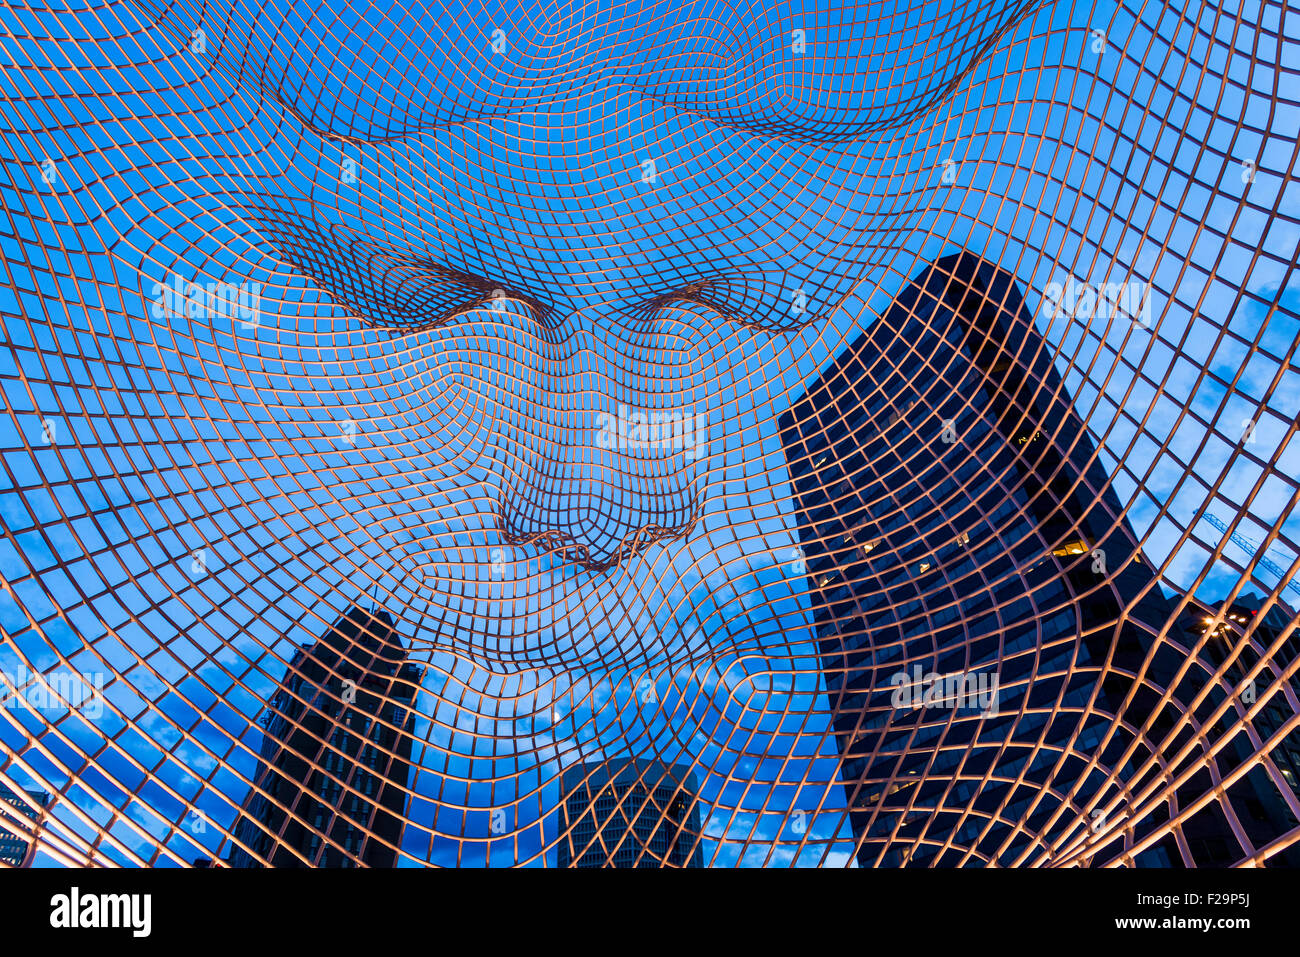 Wire Mesh Sculpture Stock Photos & Wire Mesh Sculpture Stock Images ...